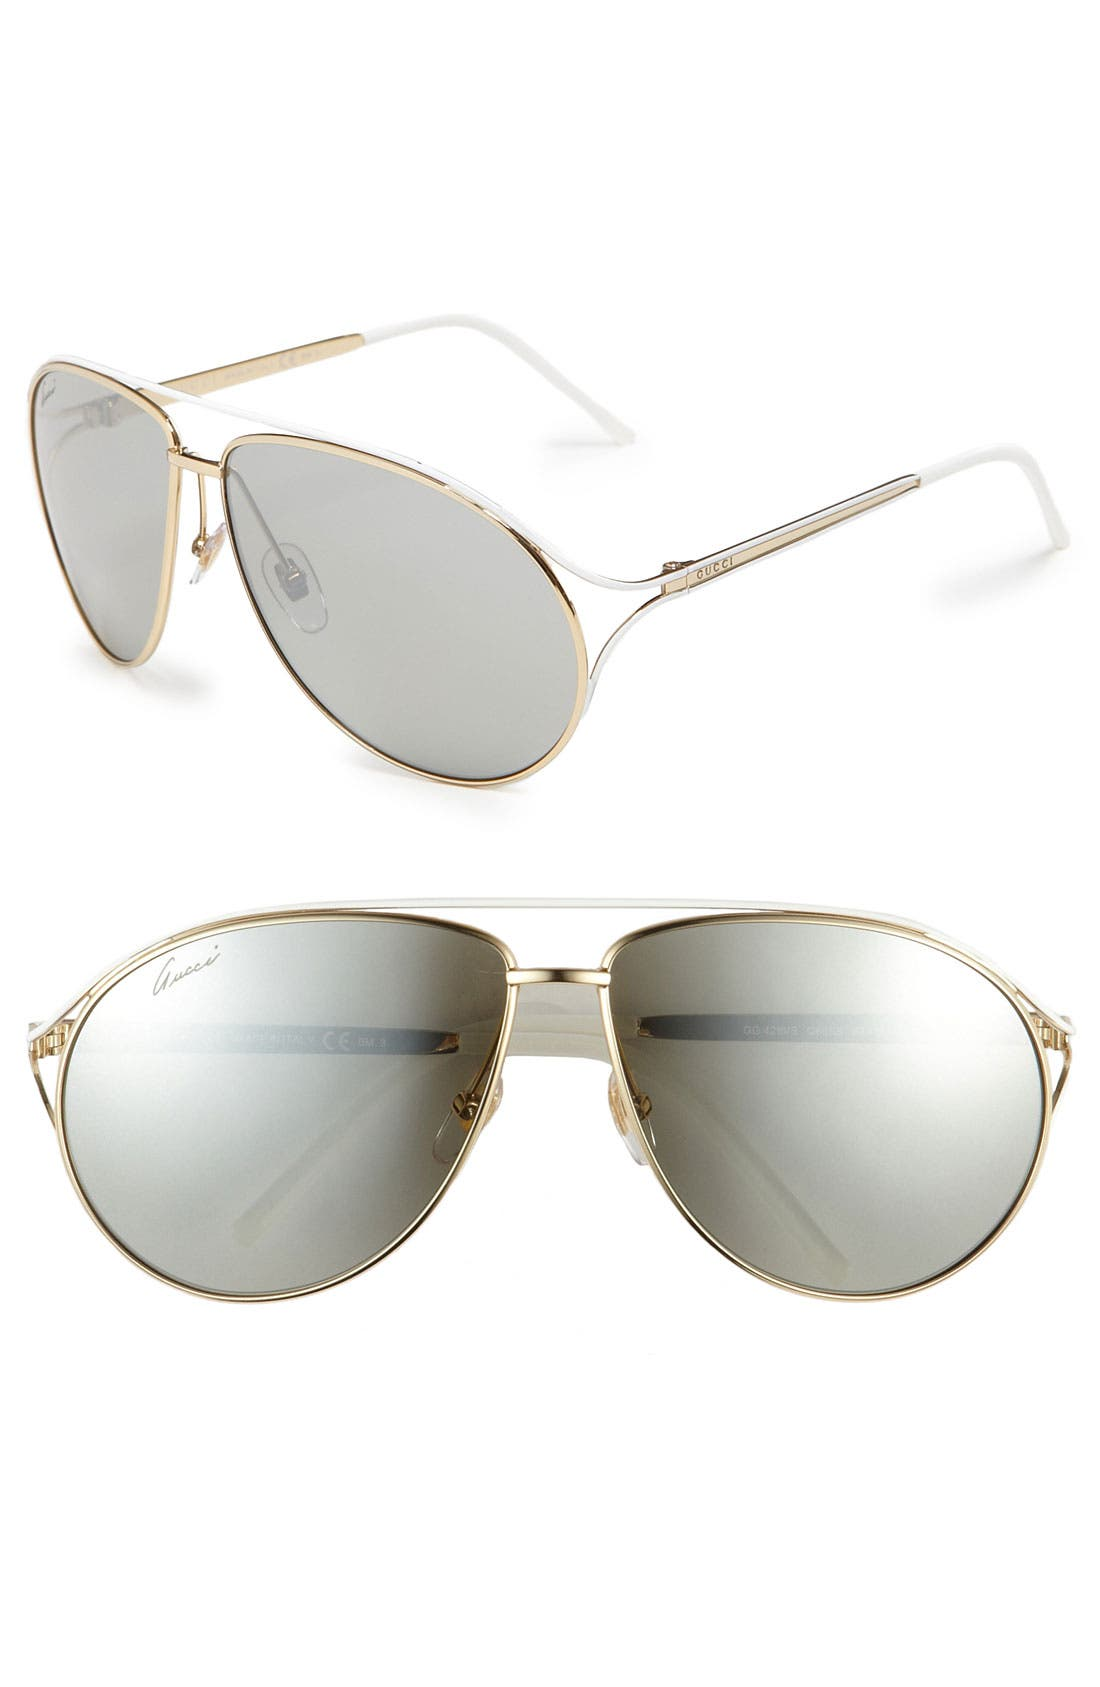 Alternate Image 1 Selected - Gucci Metal Aviator Sunglasses